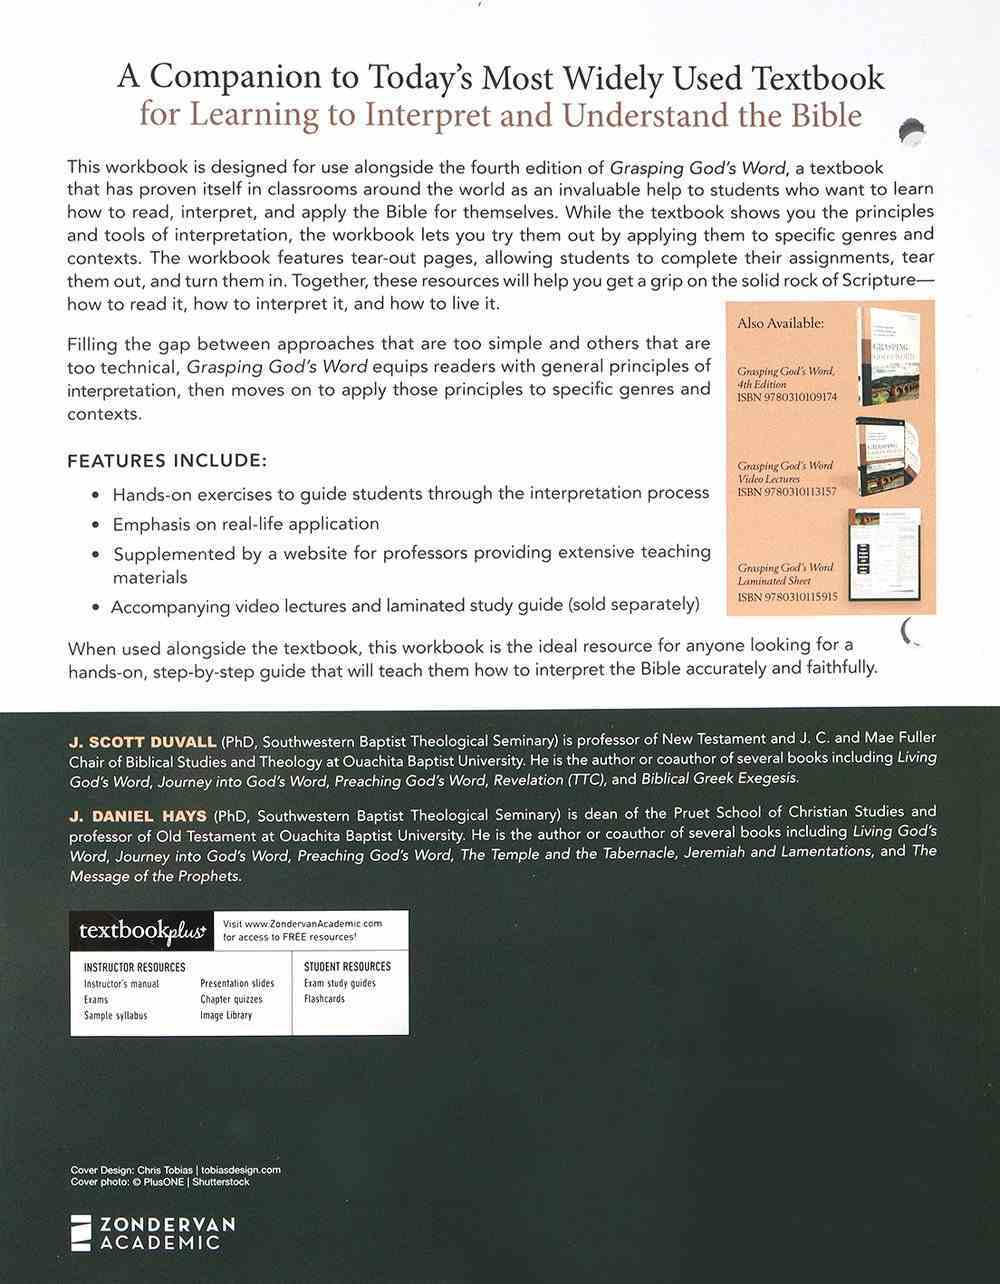 Grasping God's Word: A Hands-On Approach to Reading, Interpreting, and Applying the Bible (4th Edition Workbook) Paperback